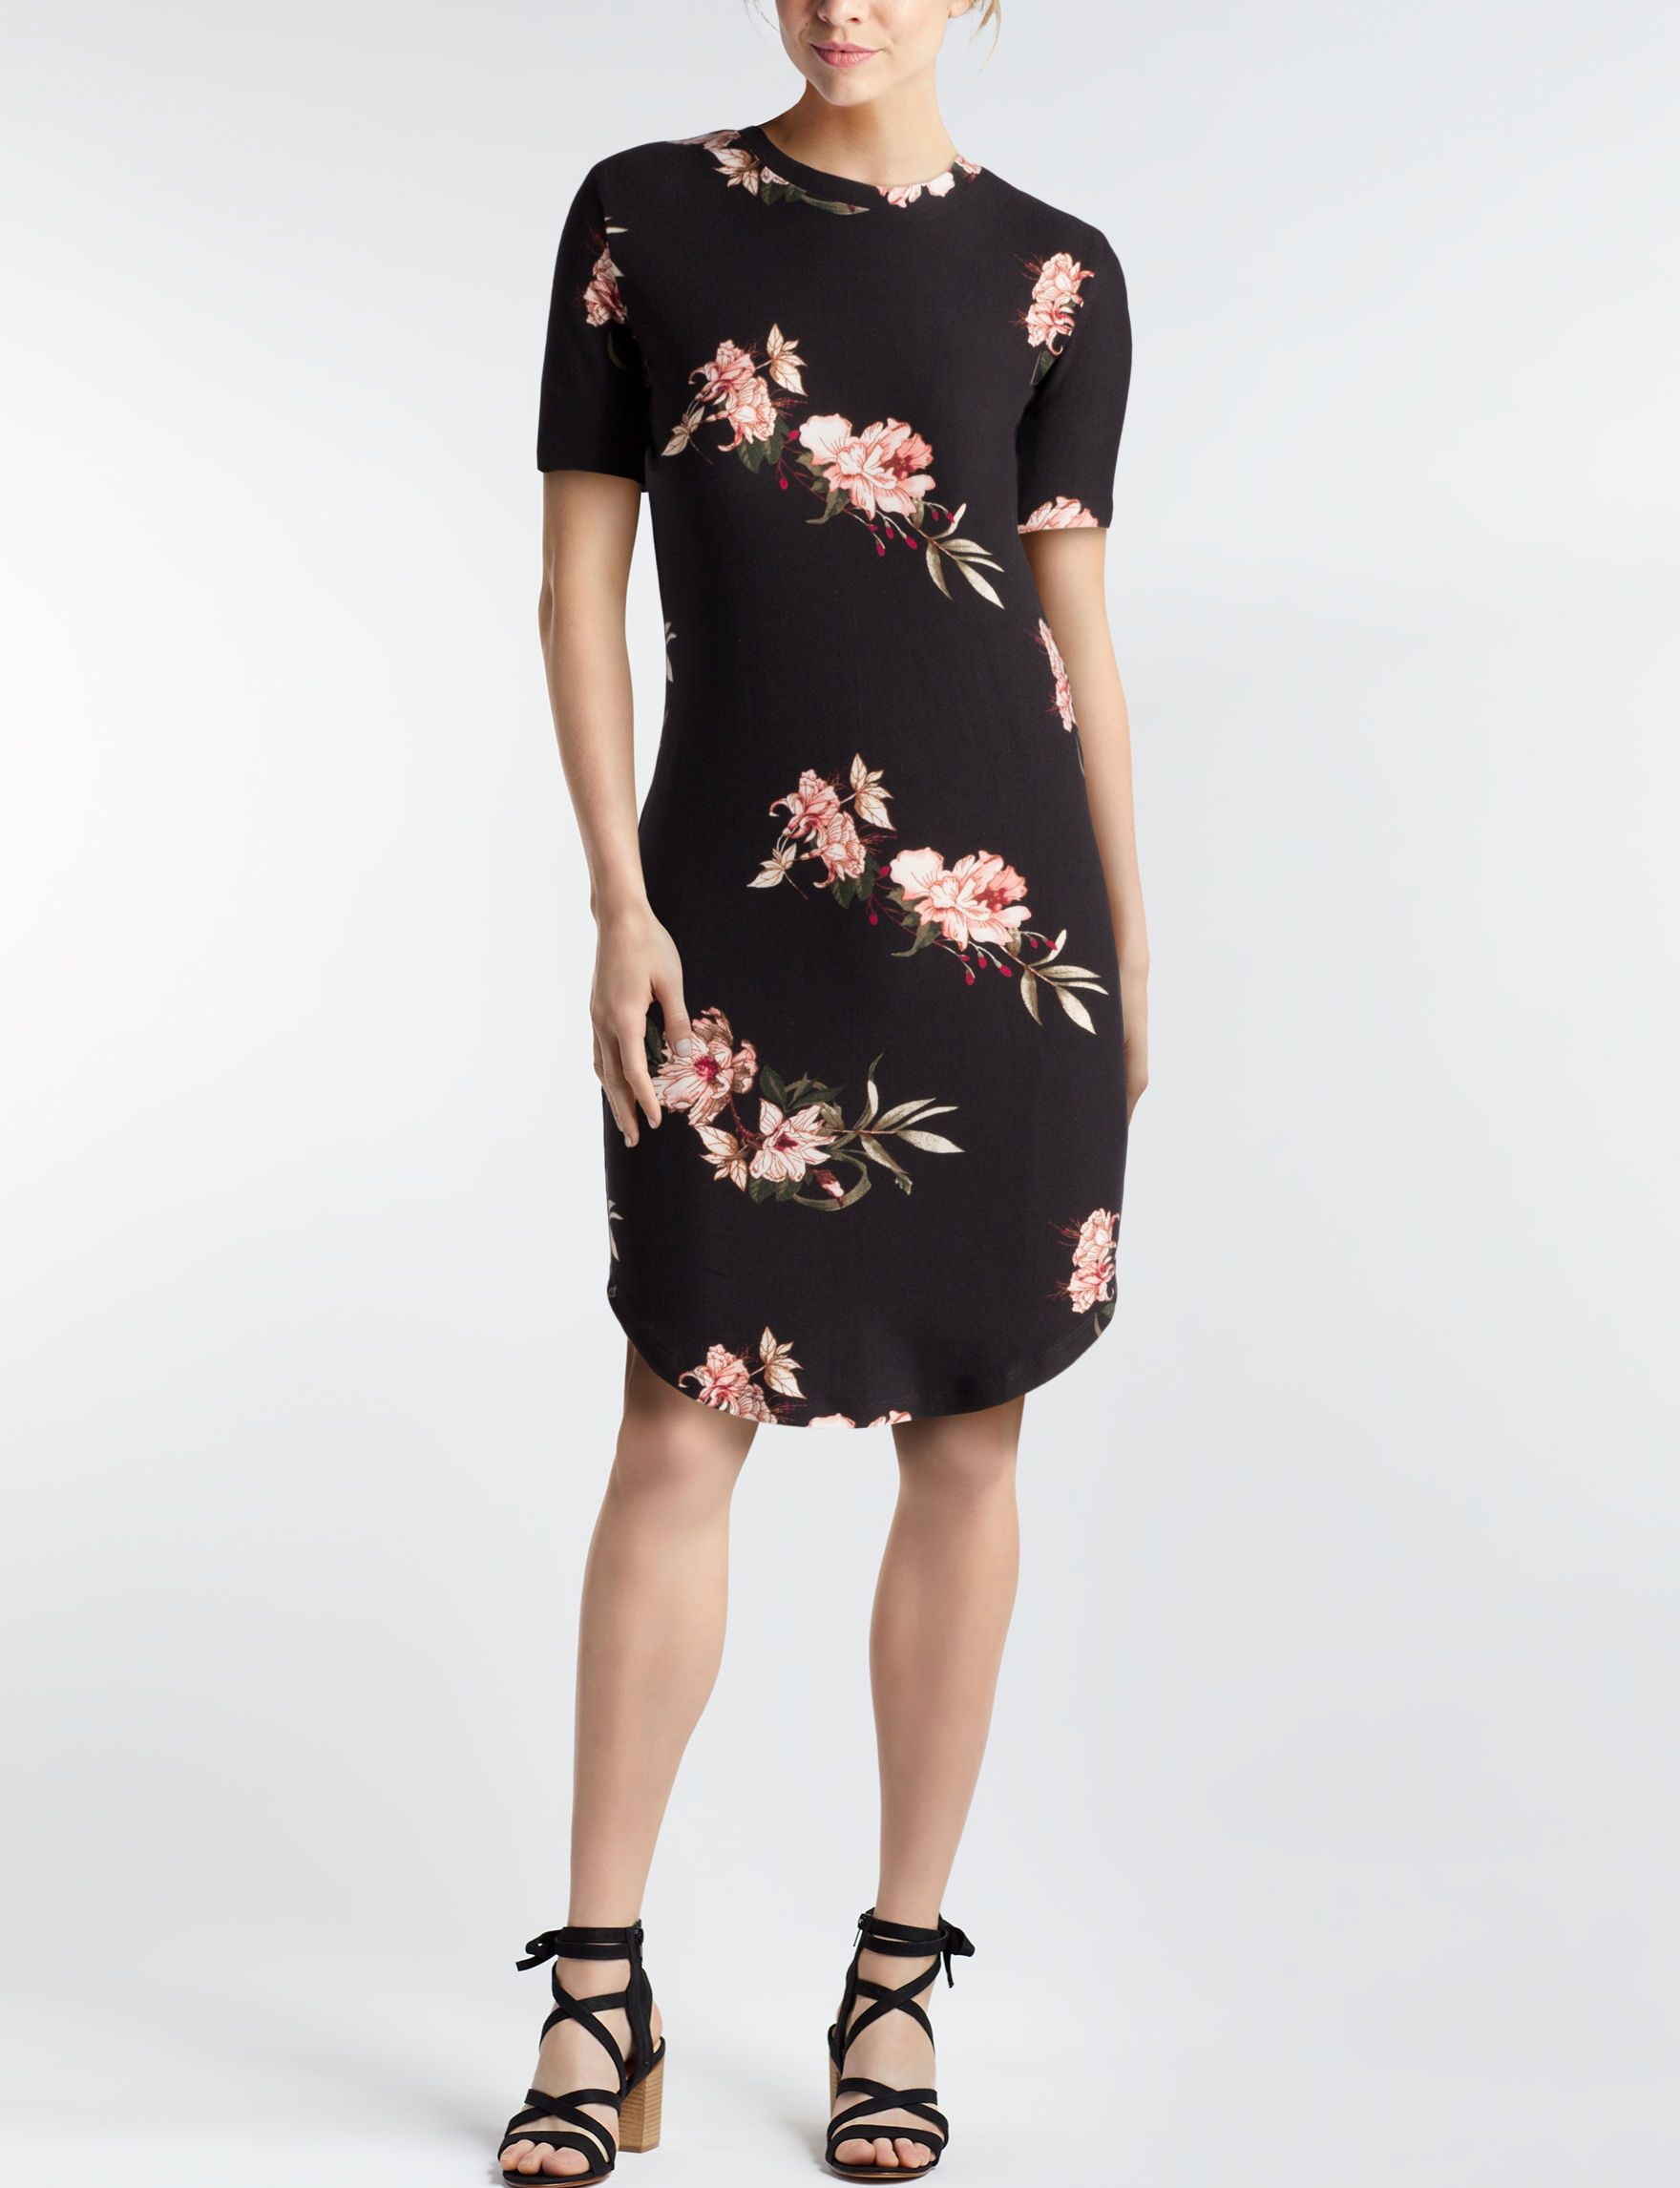 Wishful Park Black Floral Everyday & Casual Shirt Dresses